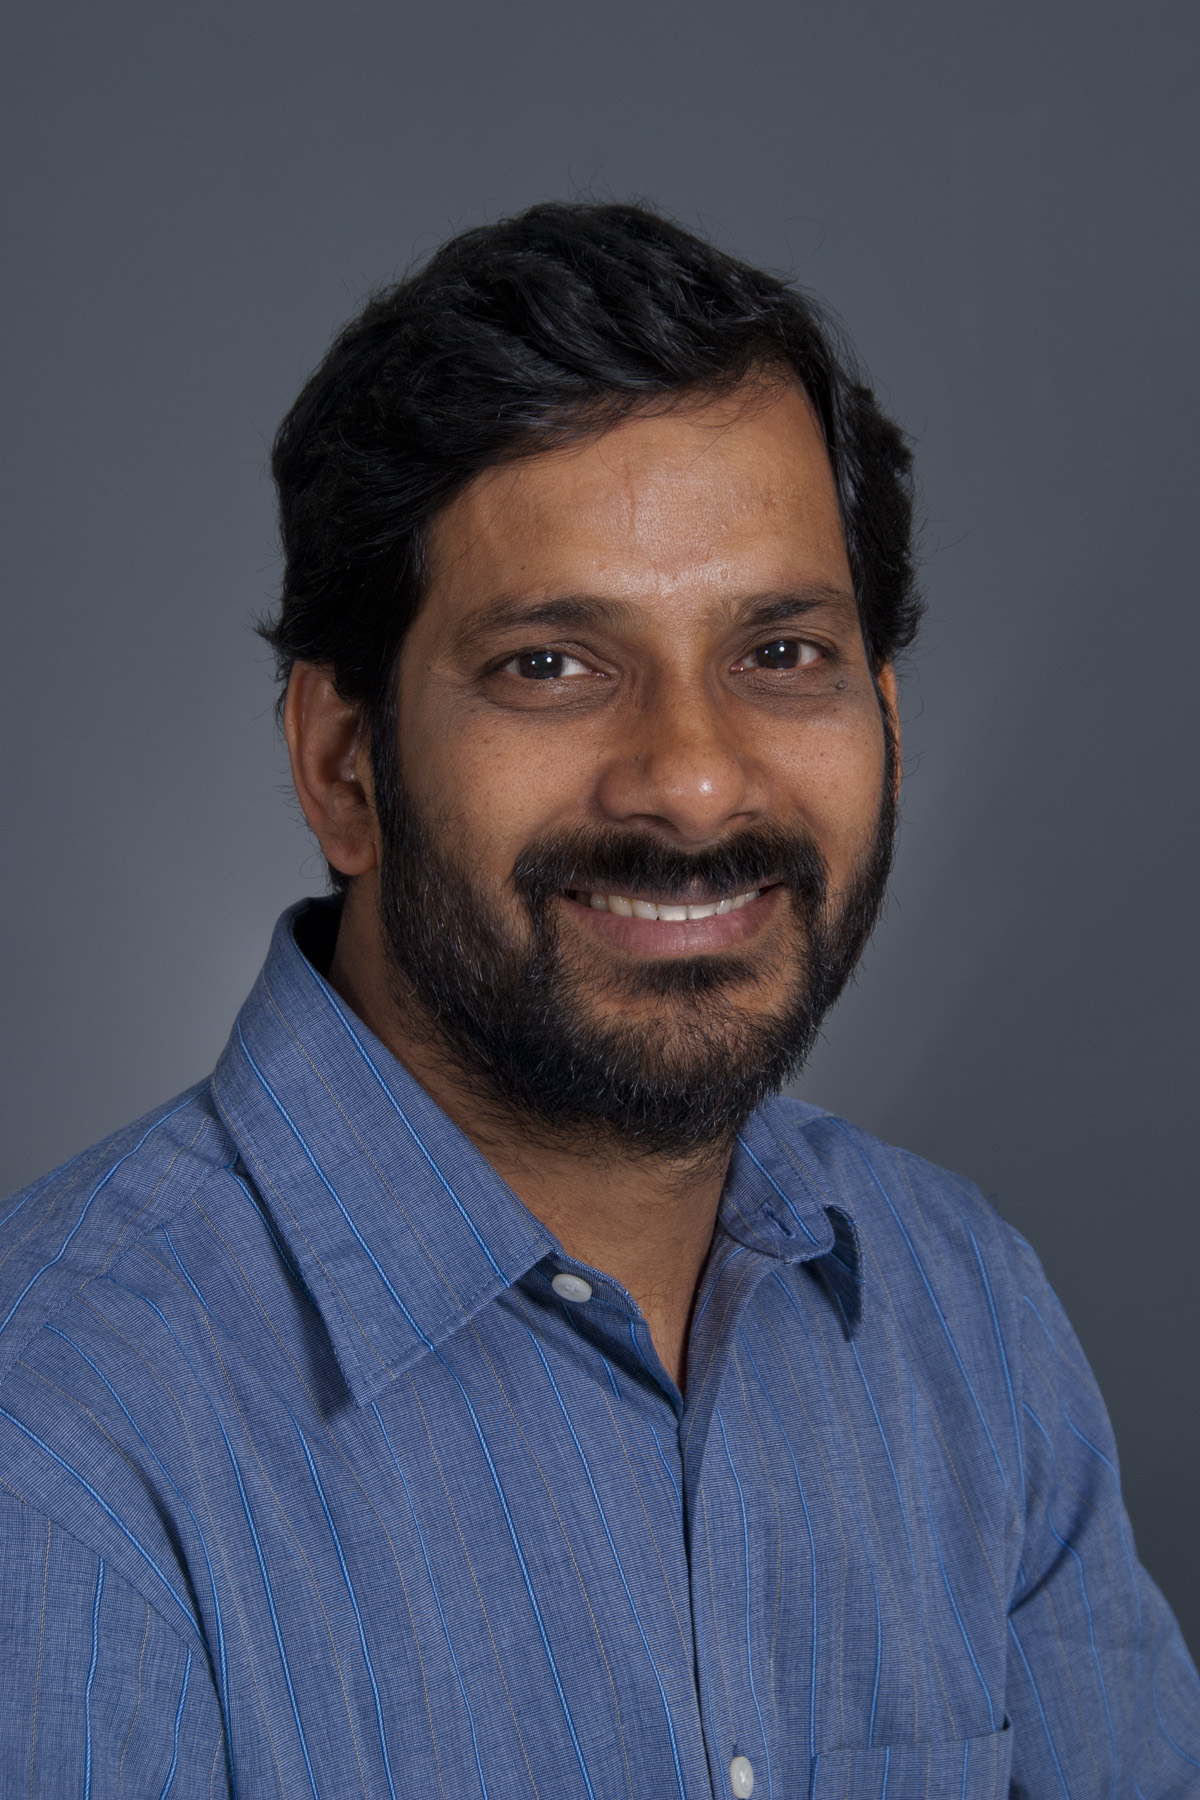 Headshot of Prateep Nayak